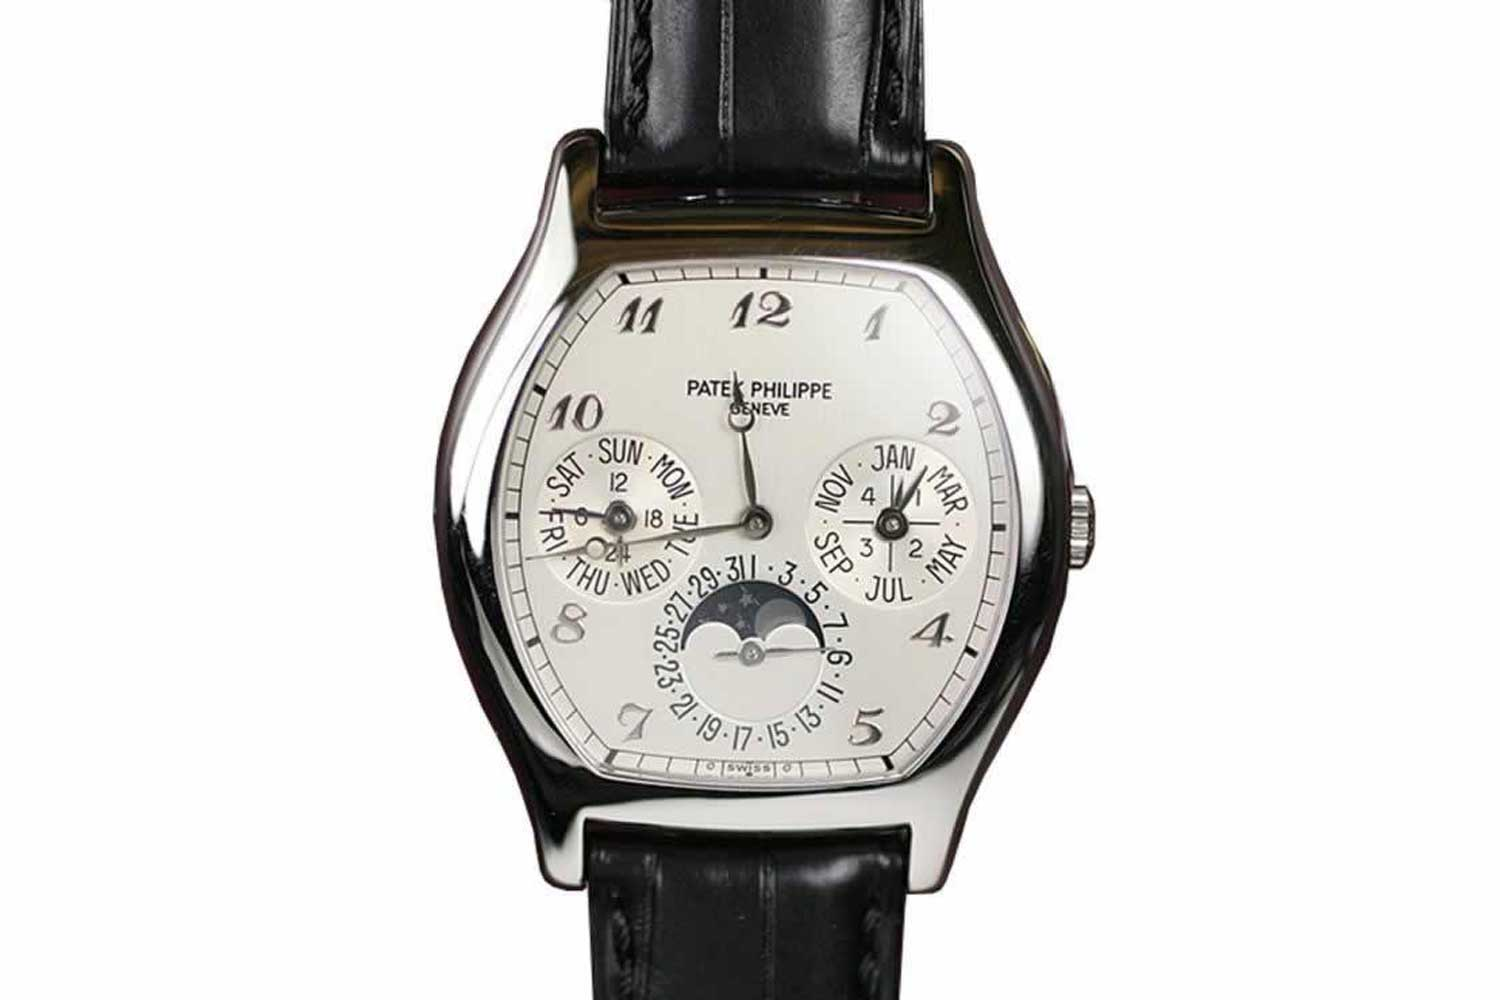 1992-?: Ref. 5040, Patek's first tonneau-shaped perpetual calendar